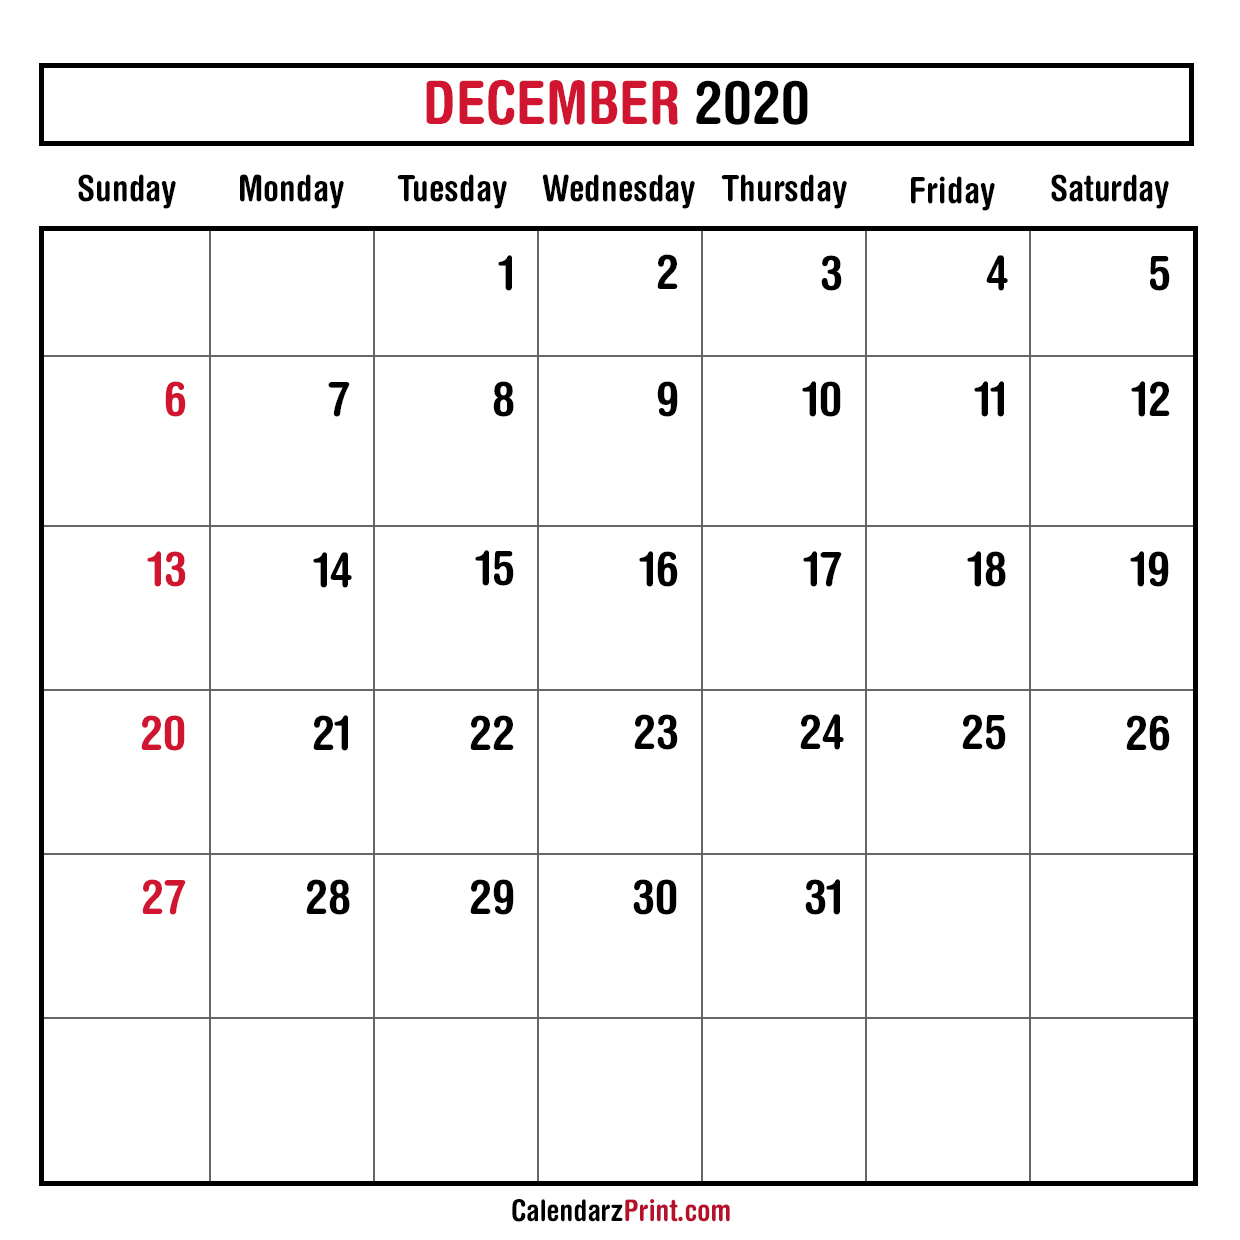 December 2020 Monthly Planner Calendar Printable Free Sunday